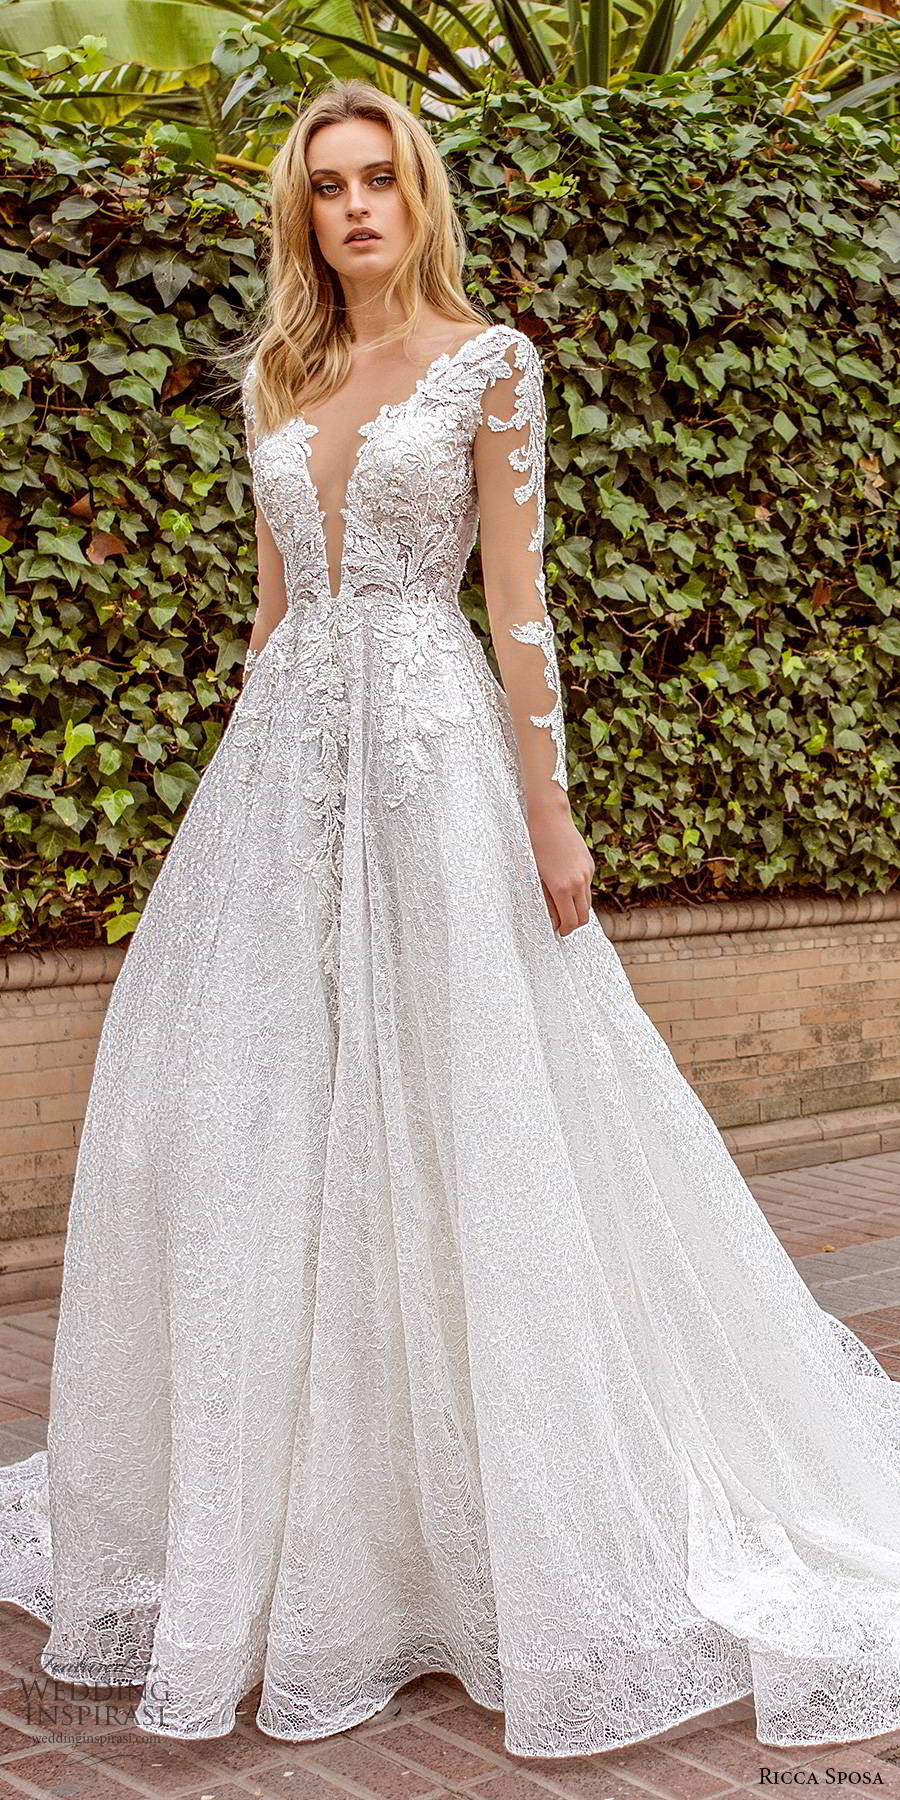 ricca sposa 2019 bridal illusion long sleeves plunging v neckline fully embellished elegant a line ball gown lace wedding dress v back chapel train (8) mv